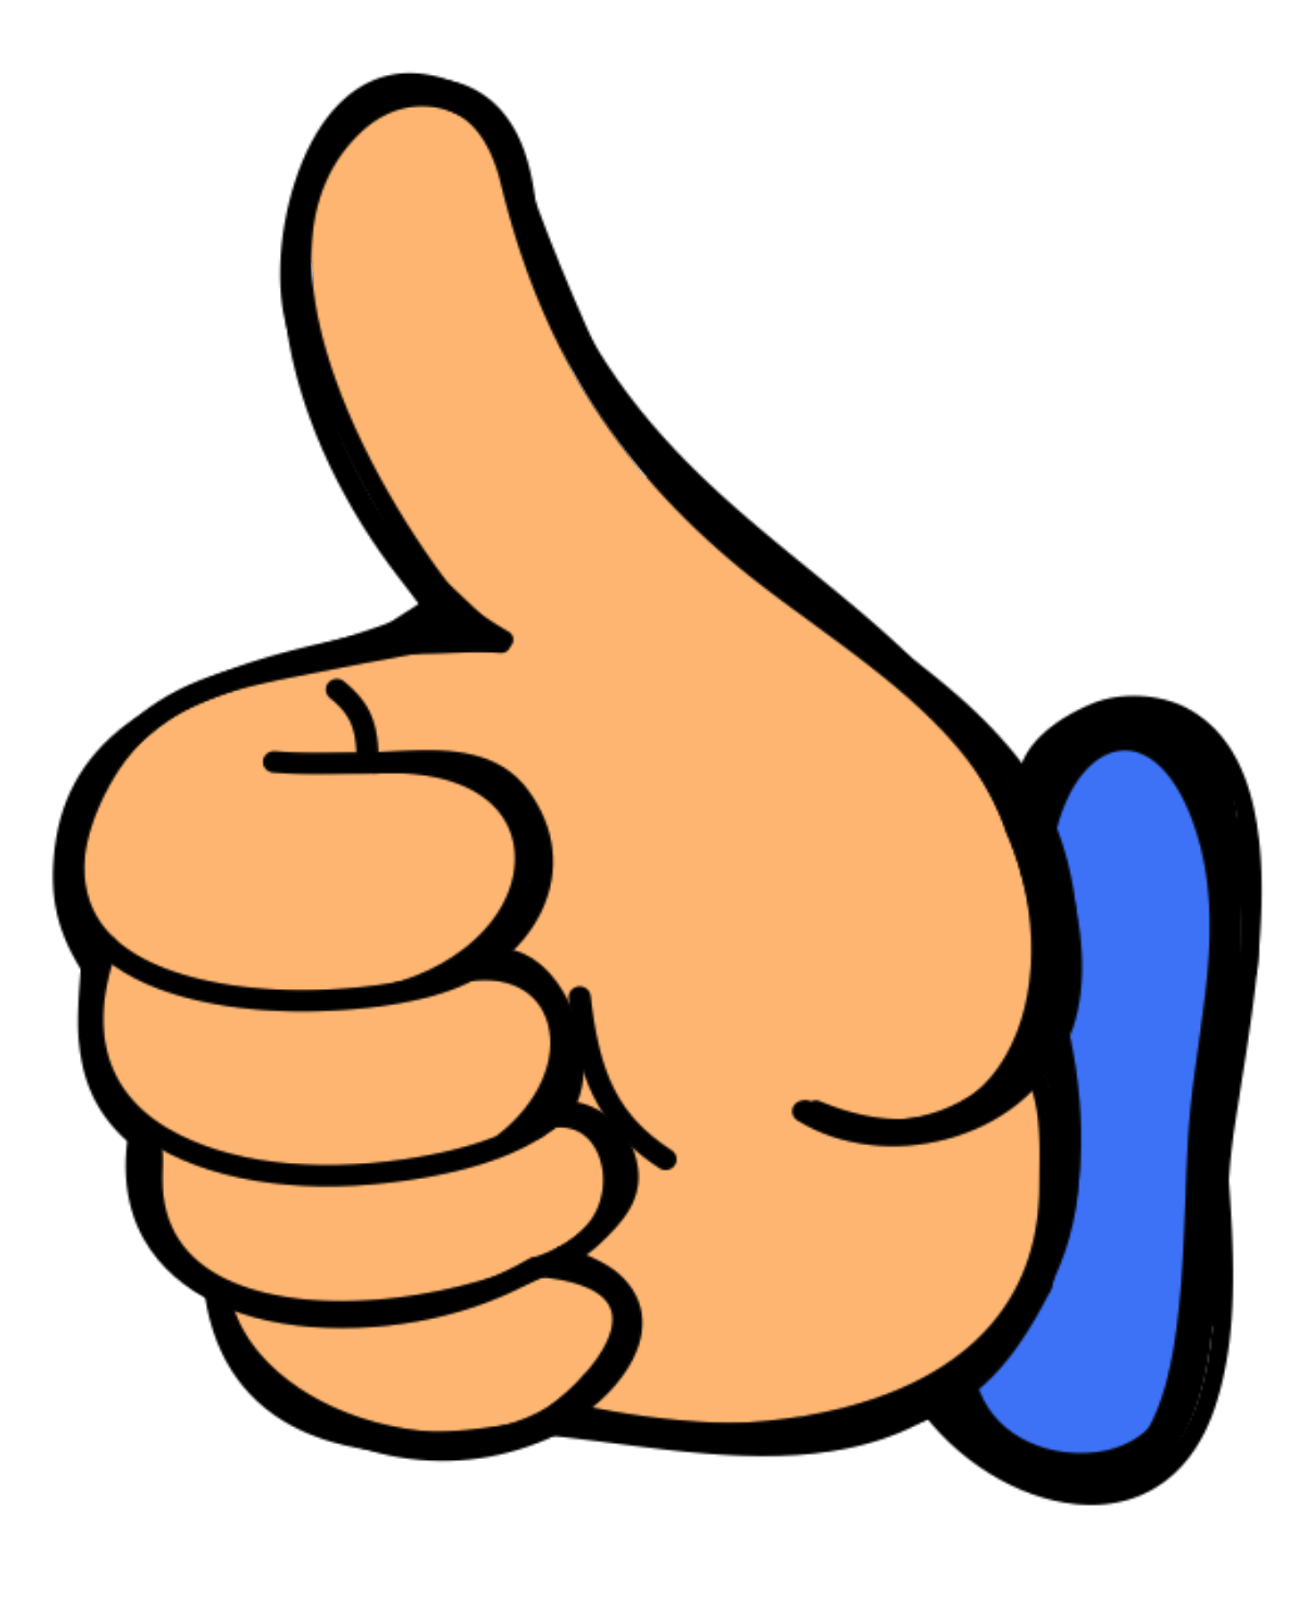 Thumbs up smiley clipart royalty free download Thumbs Up Pictures Free Download Clip Art - carwad.net royalty free download